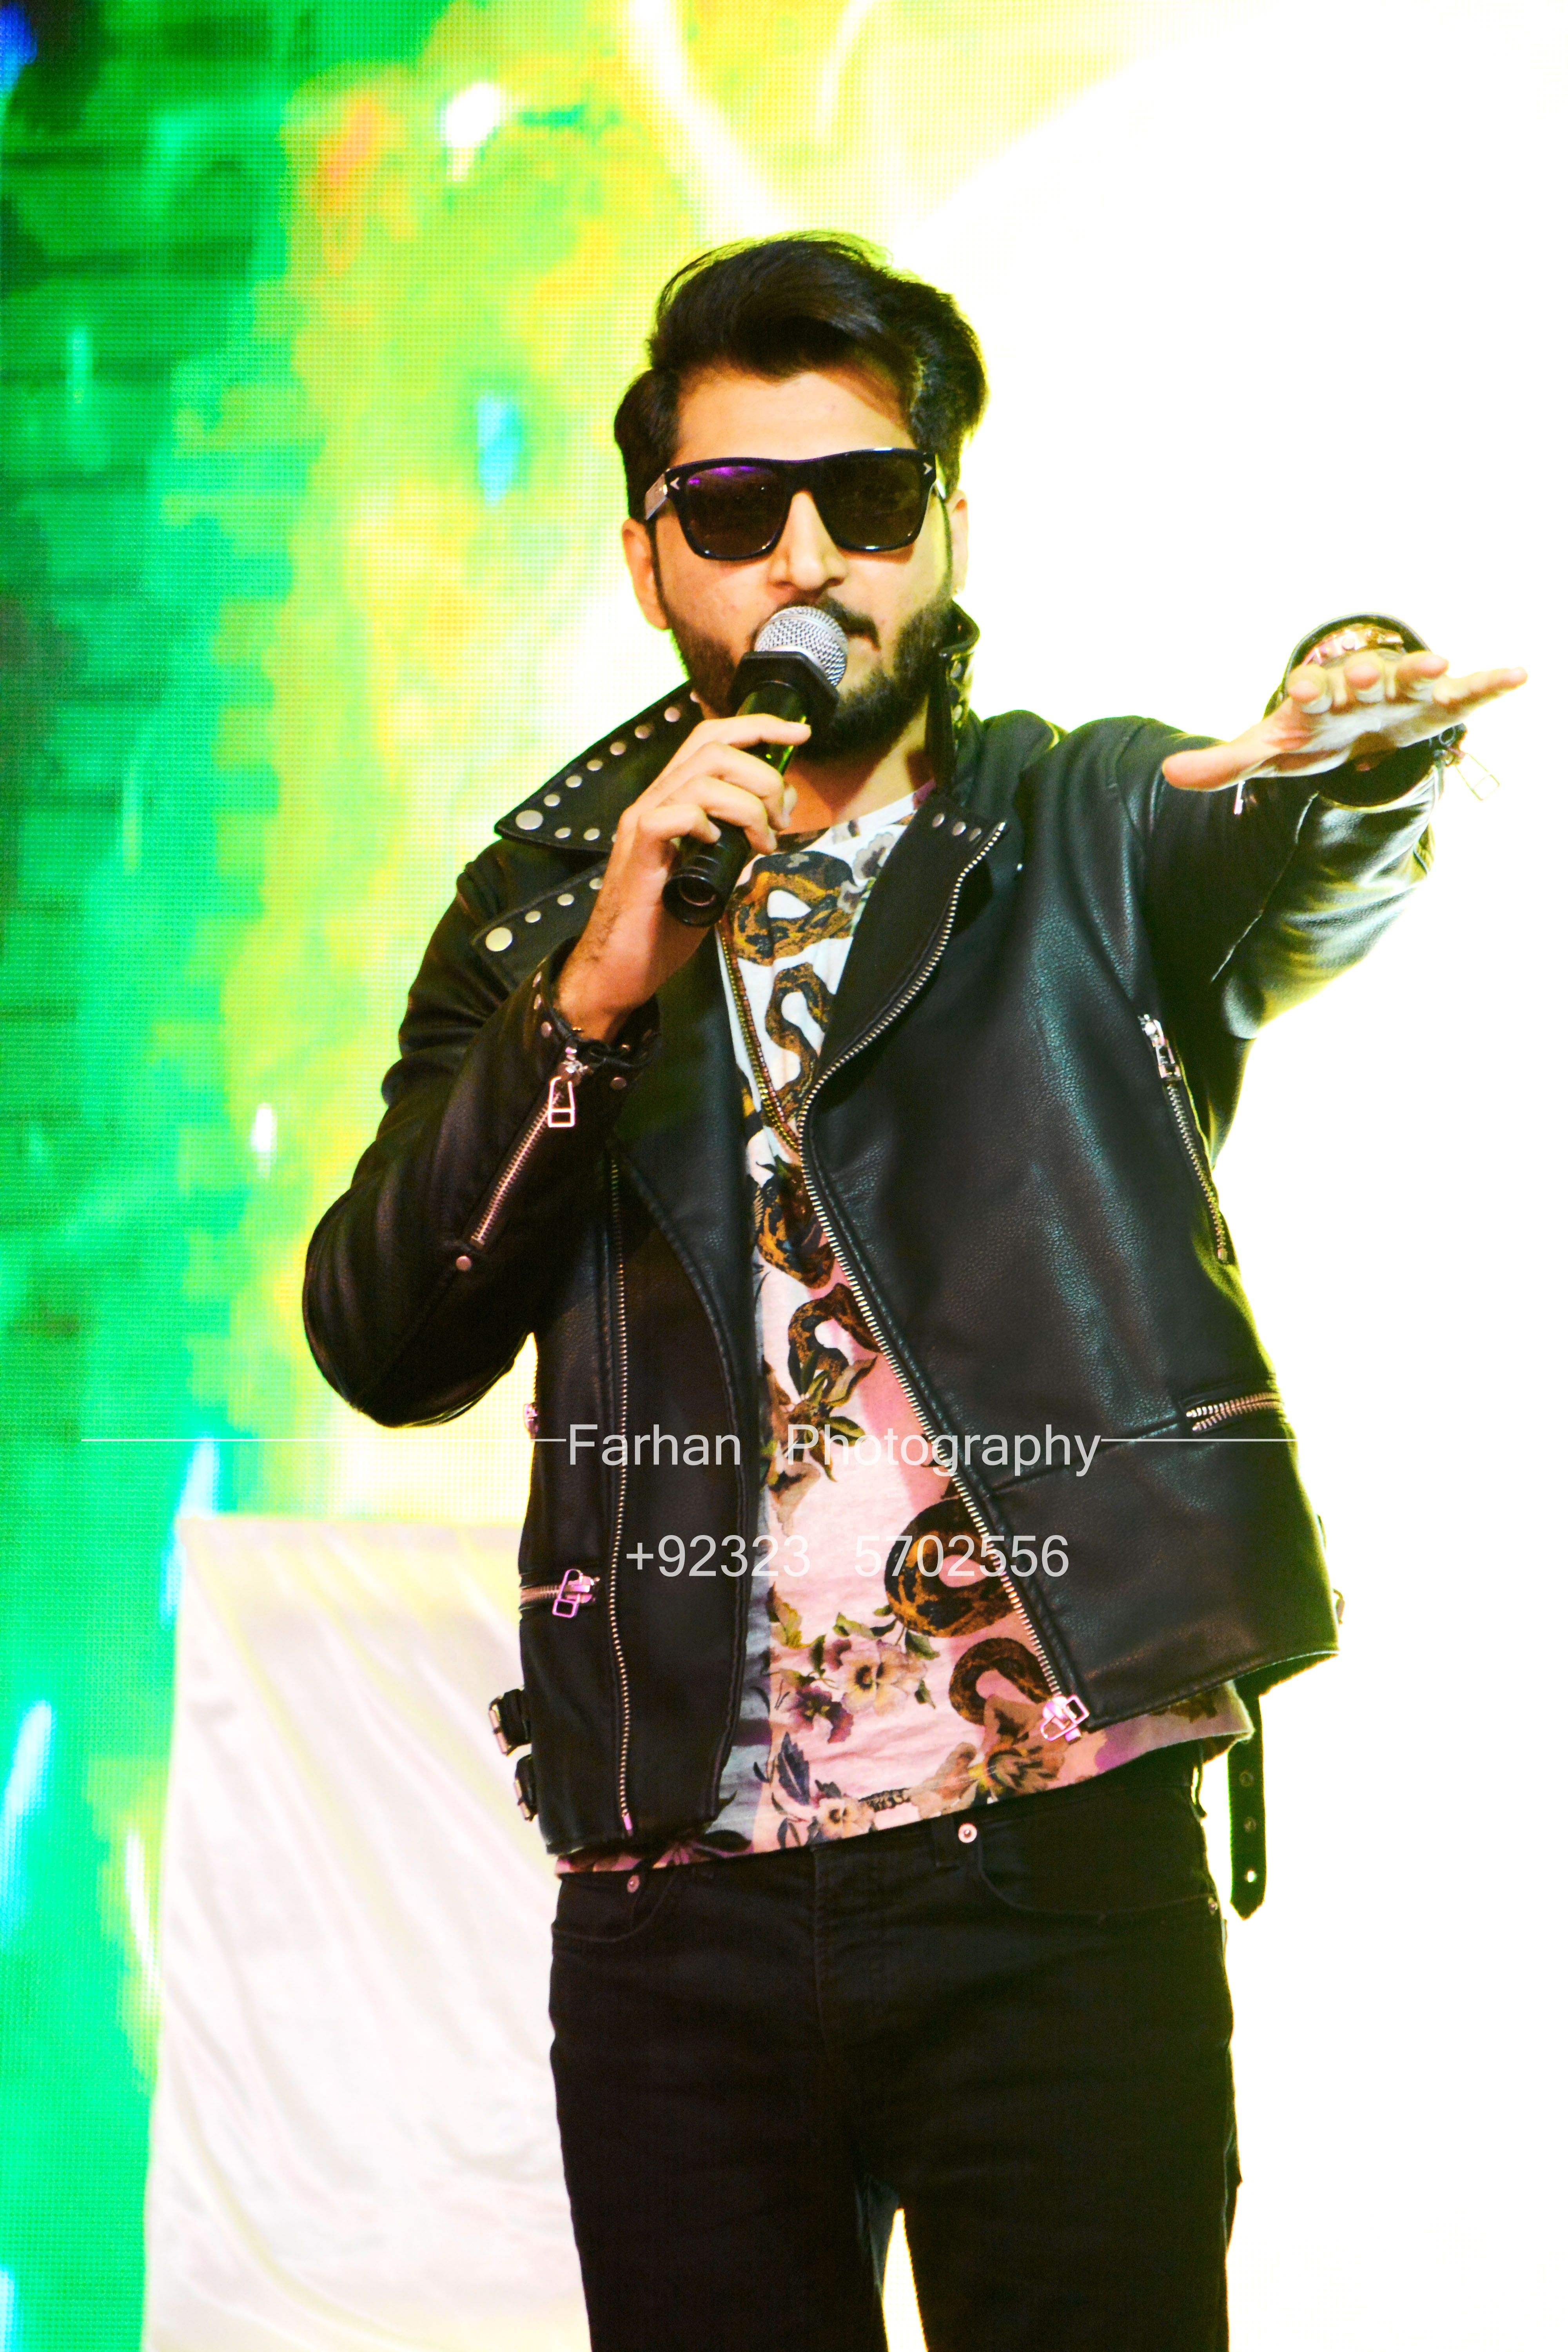 Concert of Bilal Saeed  #concert #Bahriaenclave #Islamabad